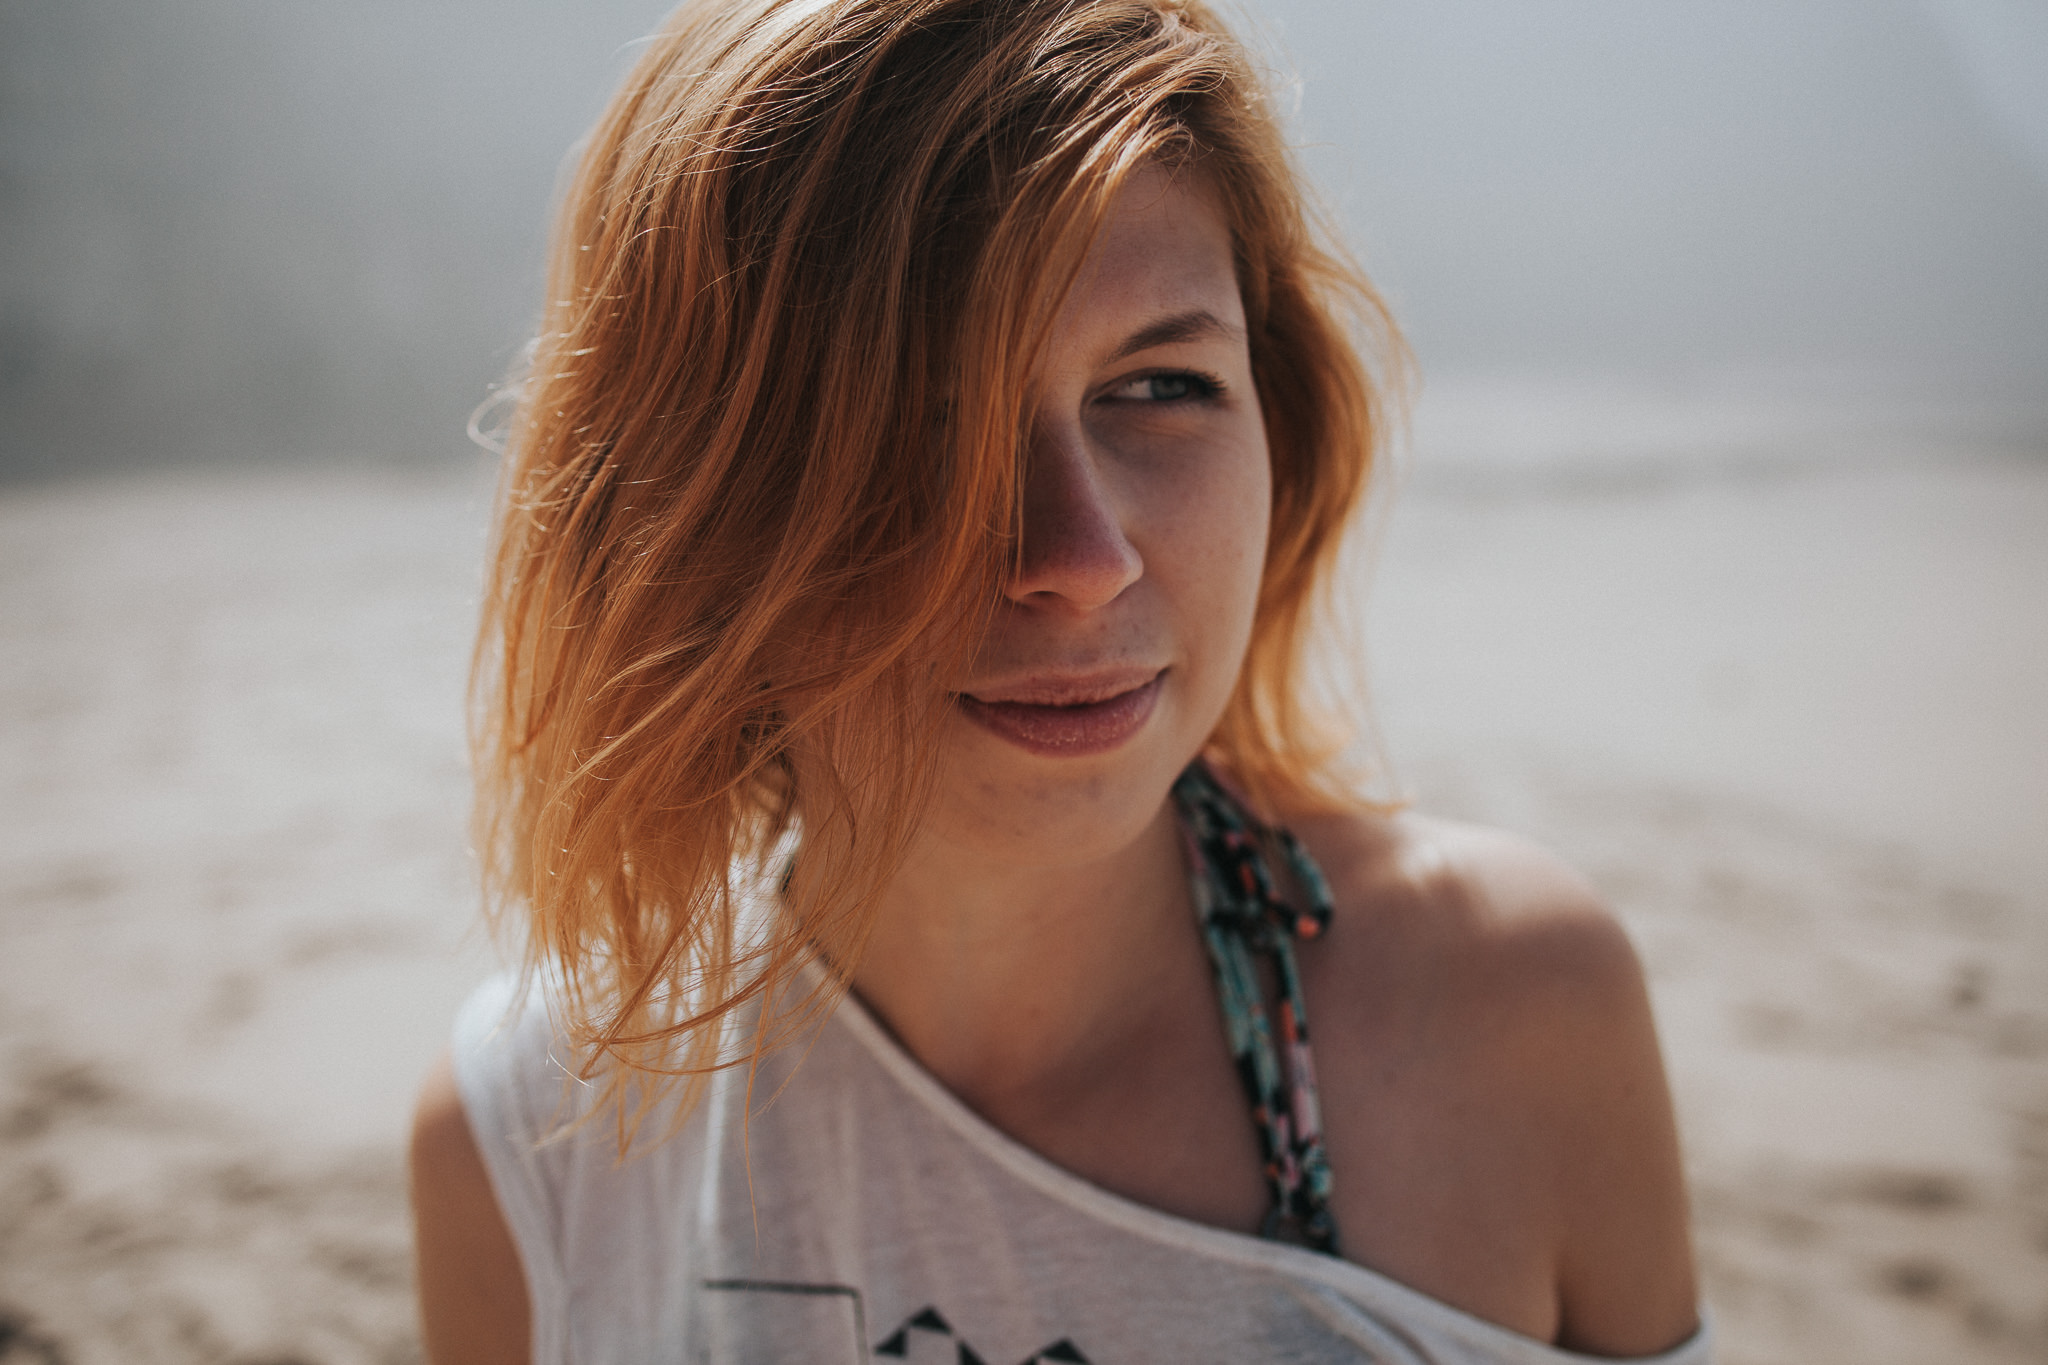 Portrait of a red-haired woman at the beach